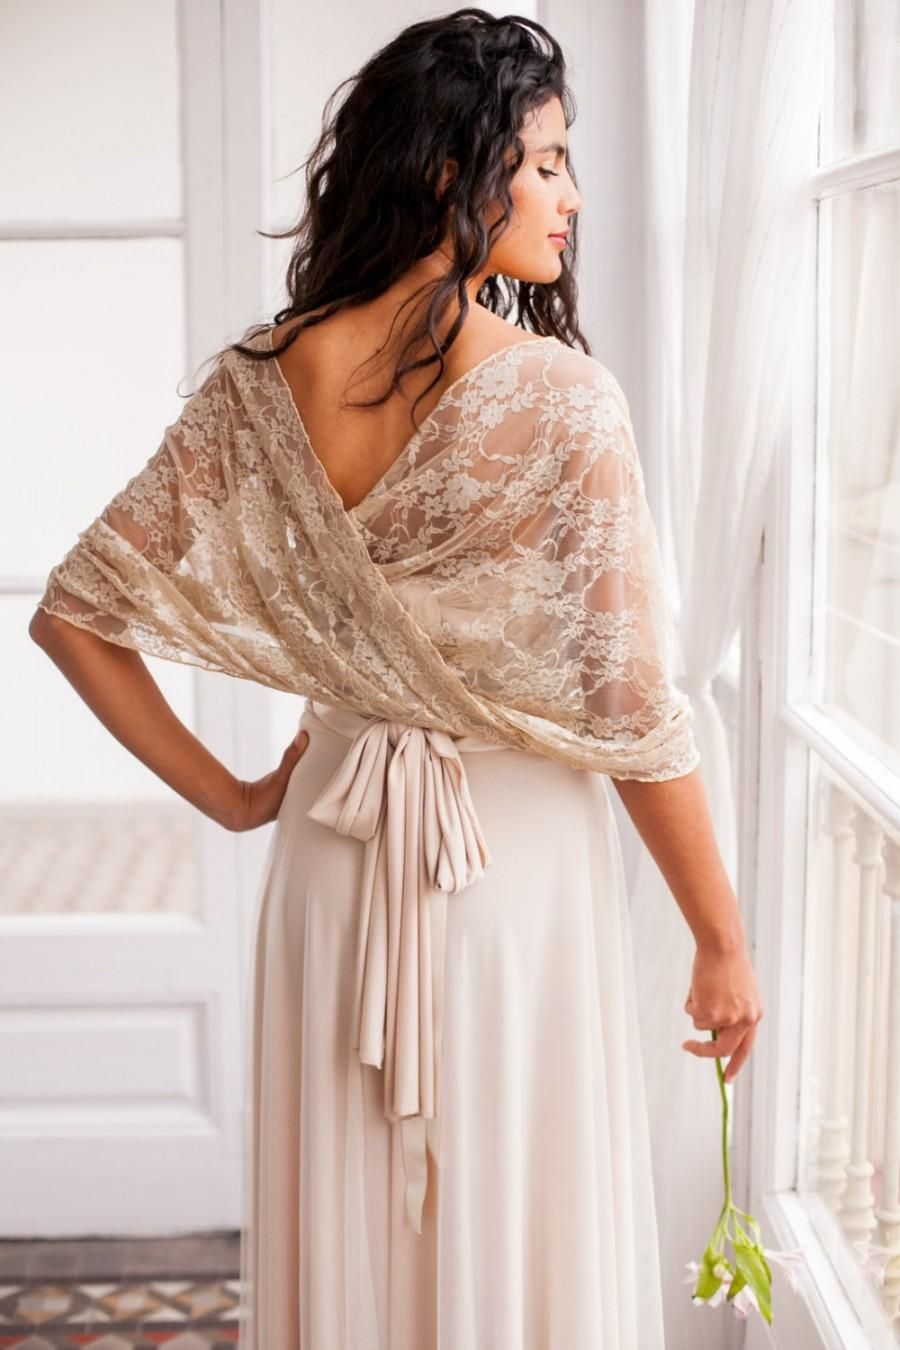 Lace Cover Up Wedding Cover Up Bridal Cover Up White Cover Up Lace Bridal Bolero Lace Wedding Bolero Lace B Wedding Dress Jacket Bridal Shawl Bridal Lace